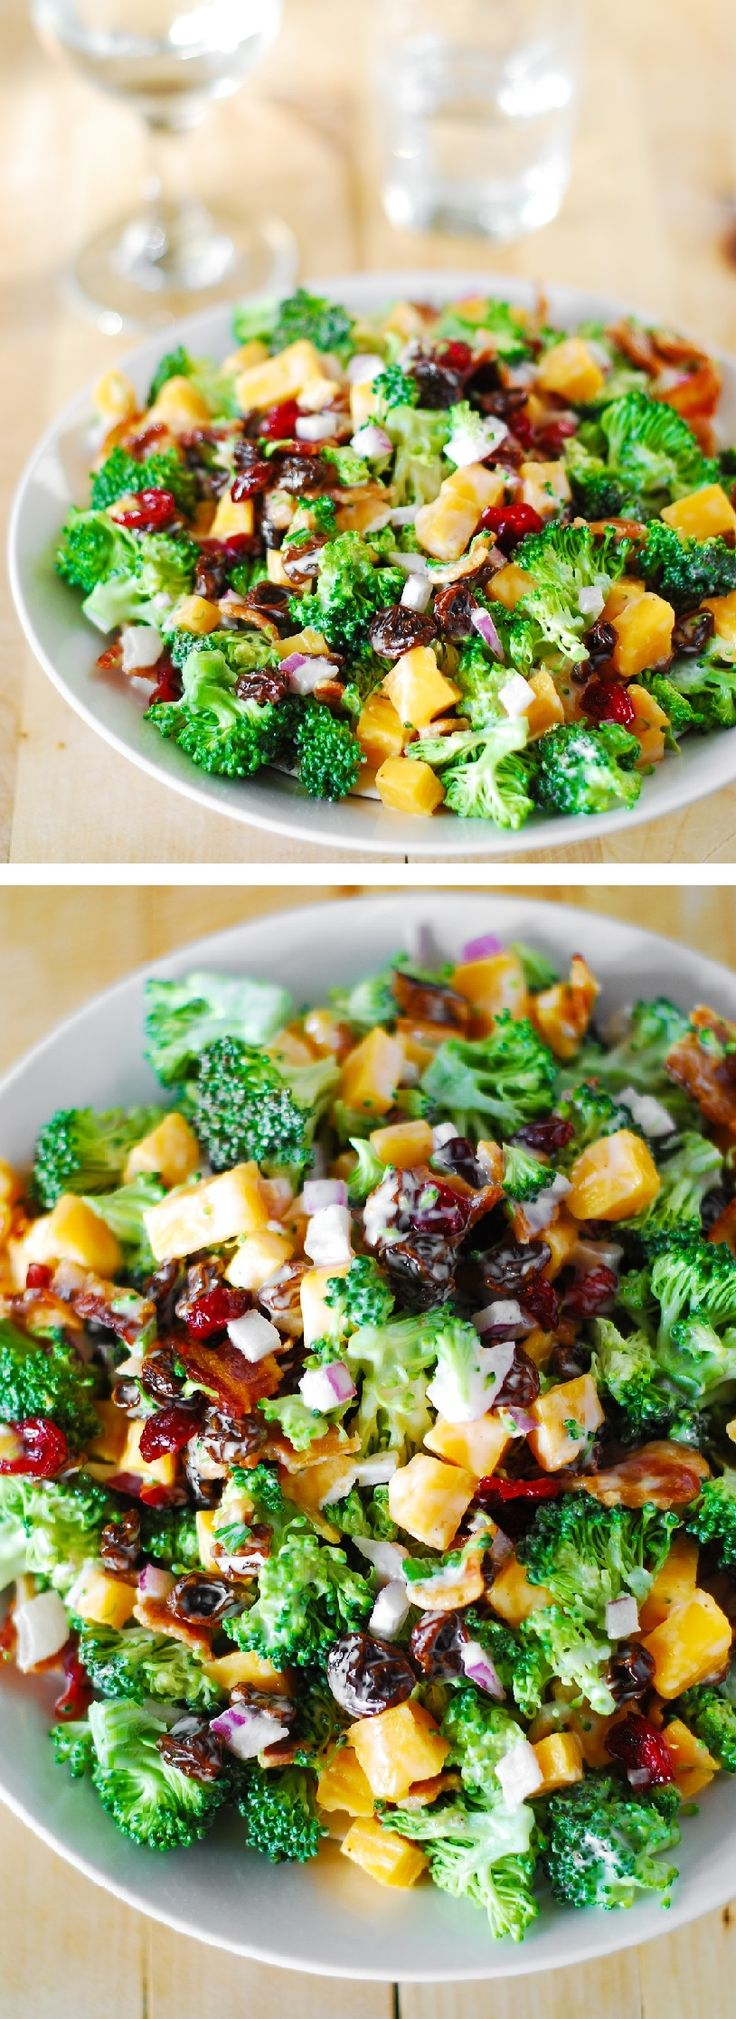 Broccoli Salad with Bacon, Raisins and Cheddar Cheese